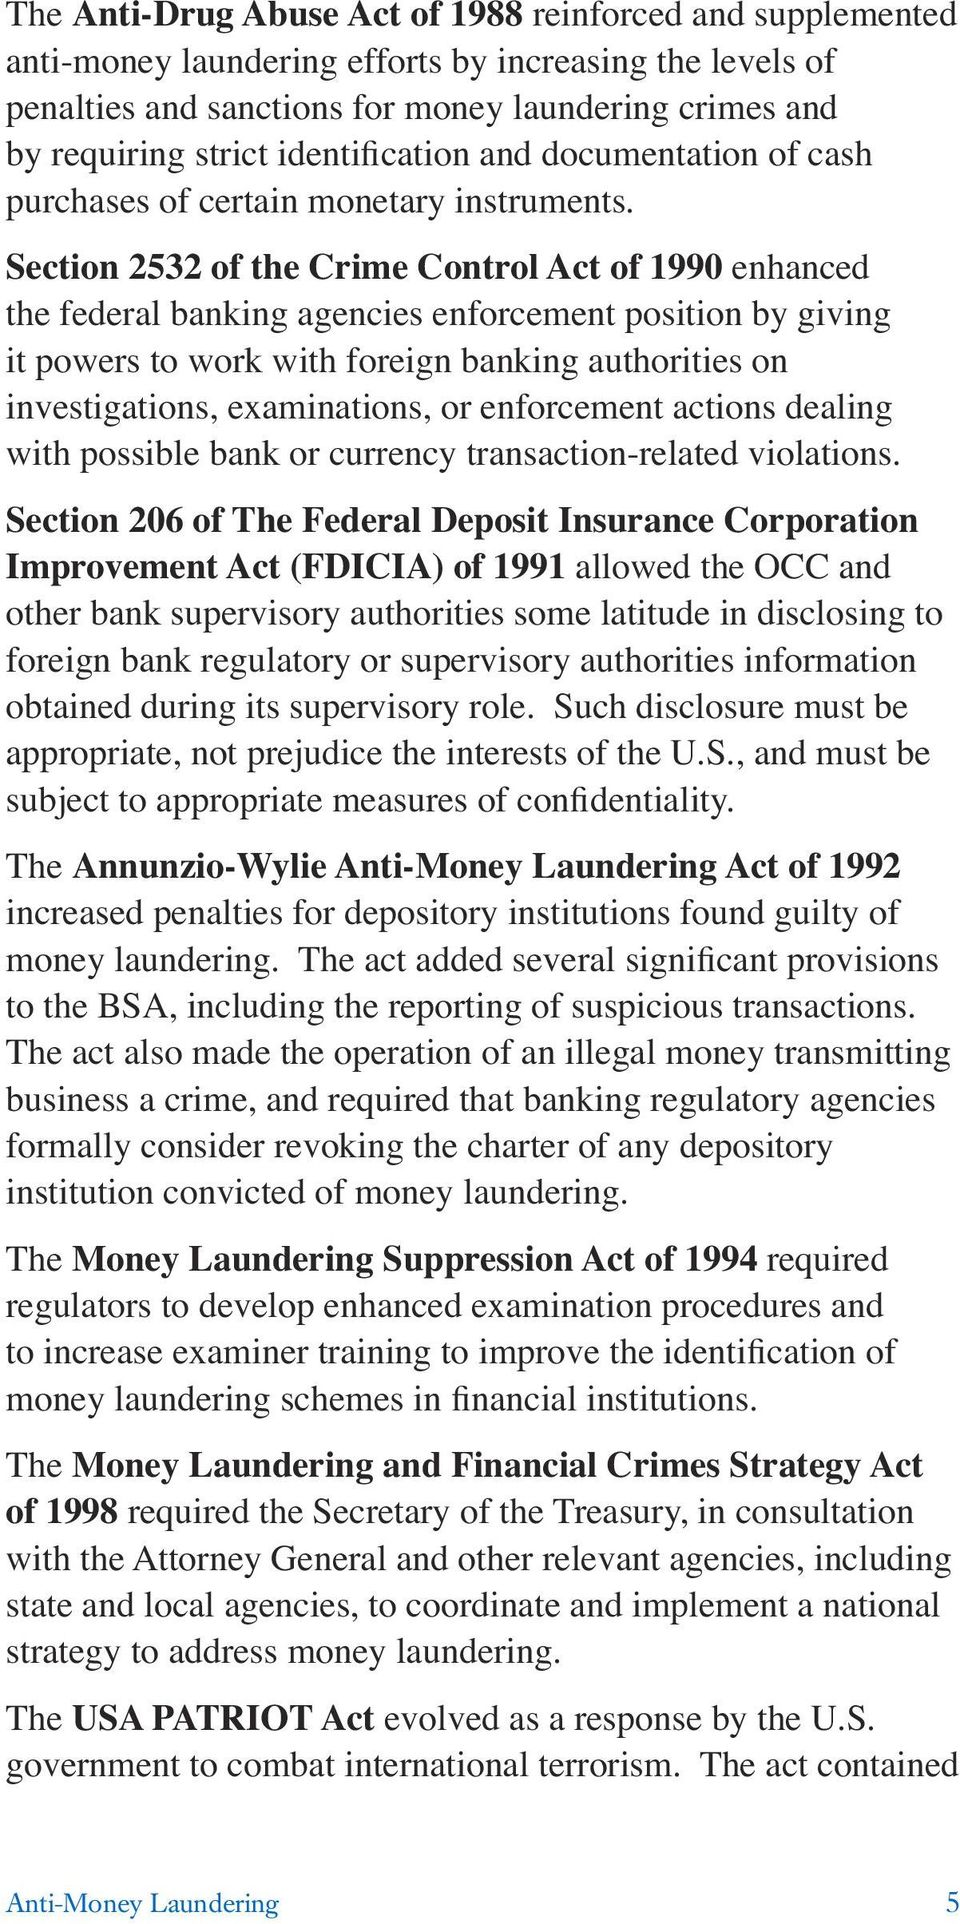 Section 2532 of the Crime Control Act of 1990 enhanced the federal banking agencies enforcement position by giving it powers to work with foreign banking authorities on investigations, examinations,